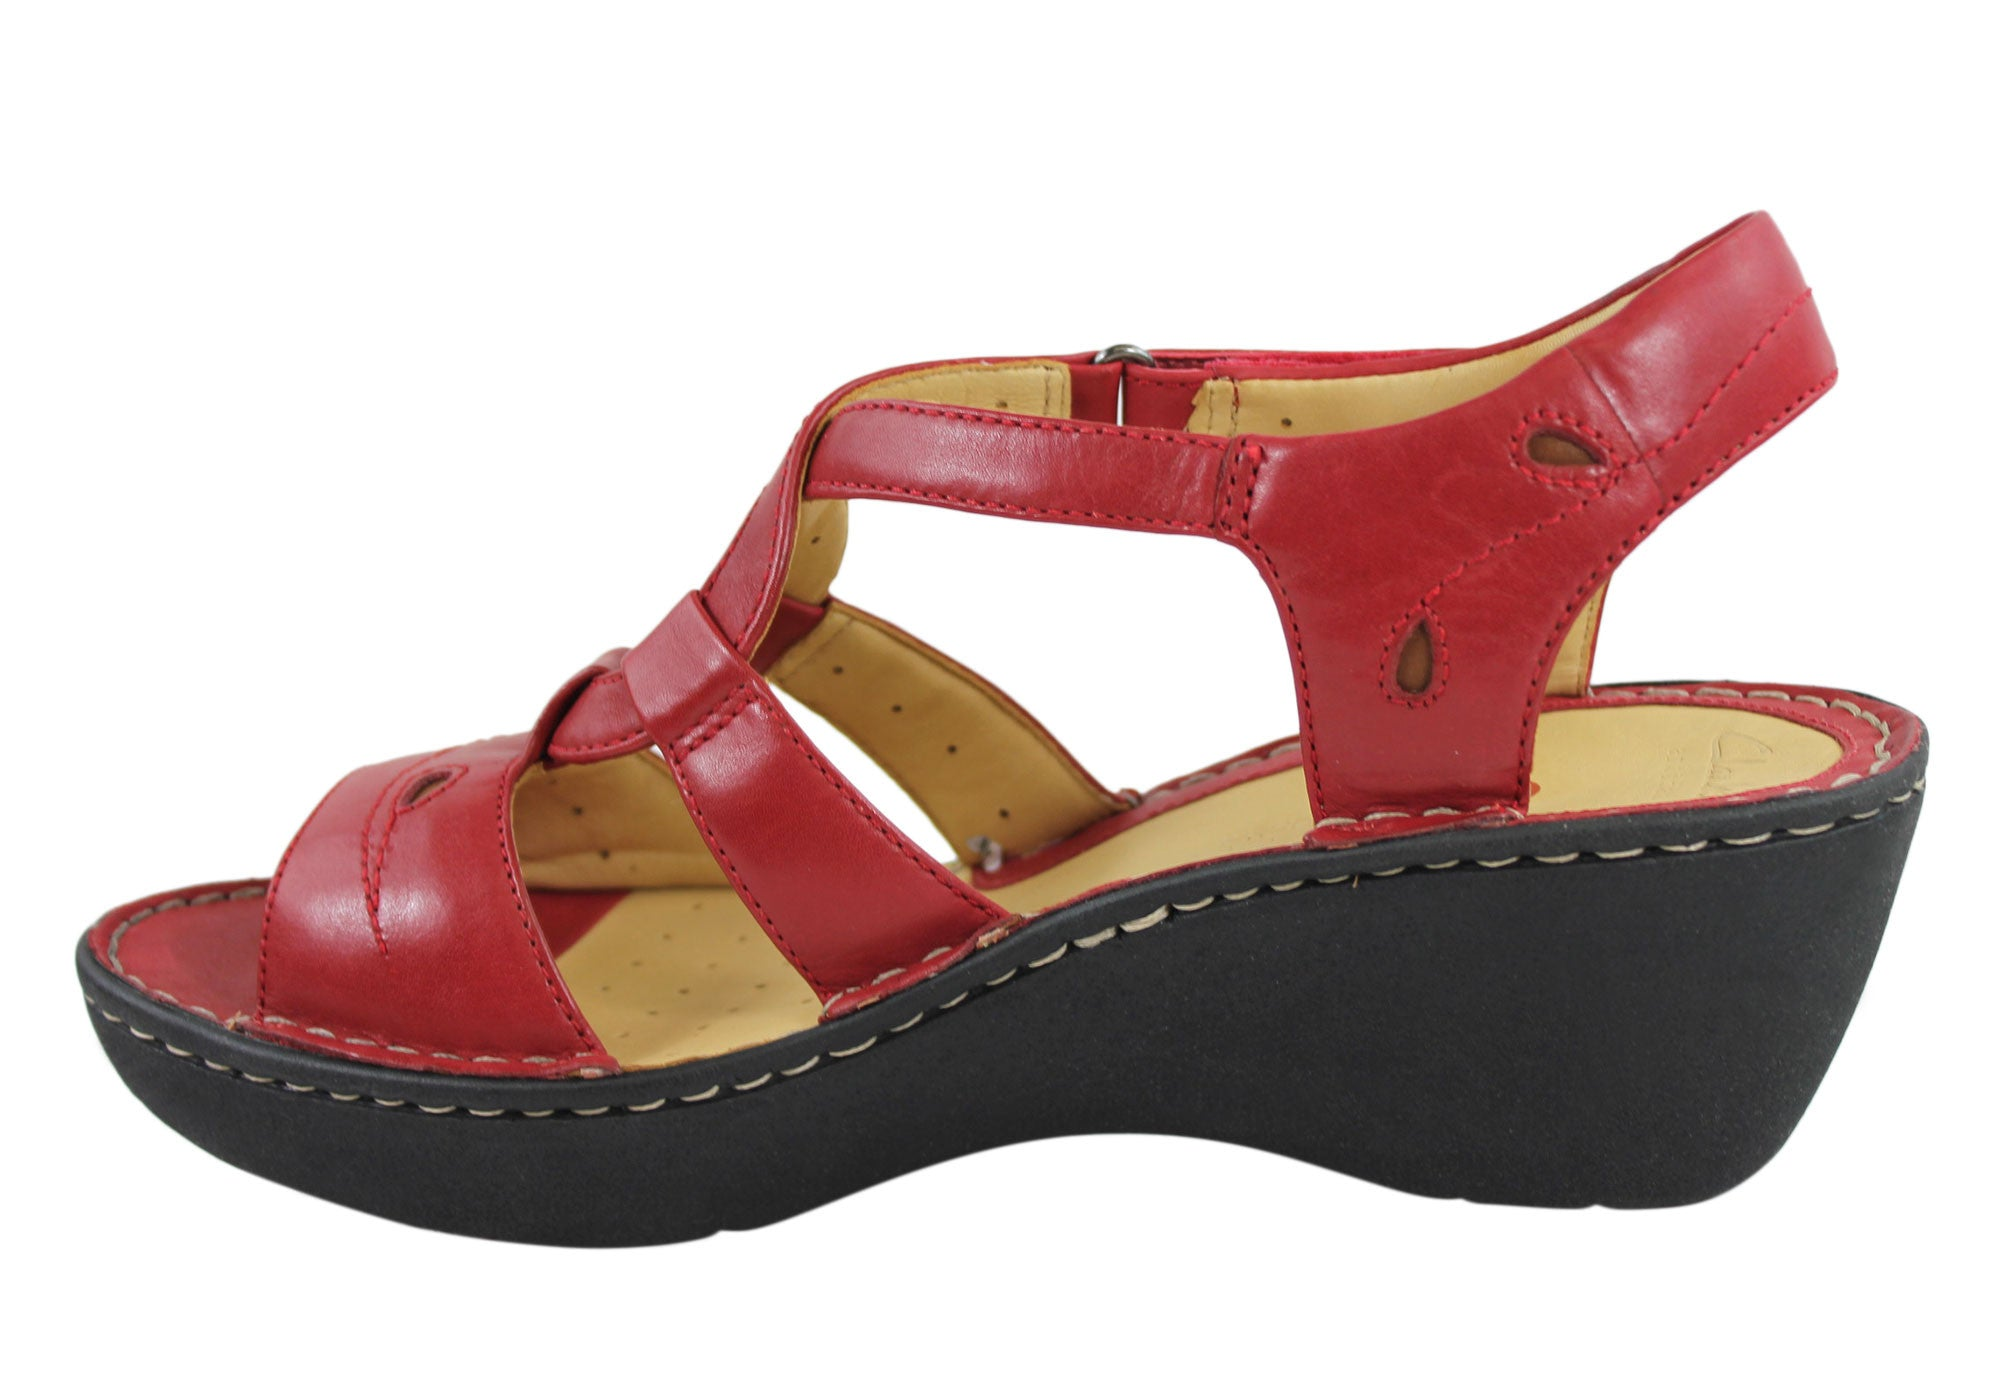 Clarks Un Stern Womens Wedge Heel Leather Sandals